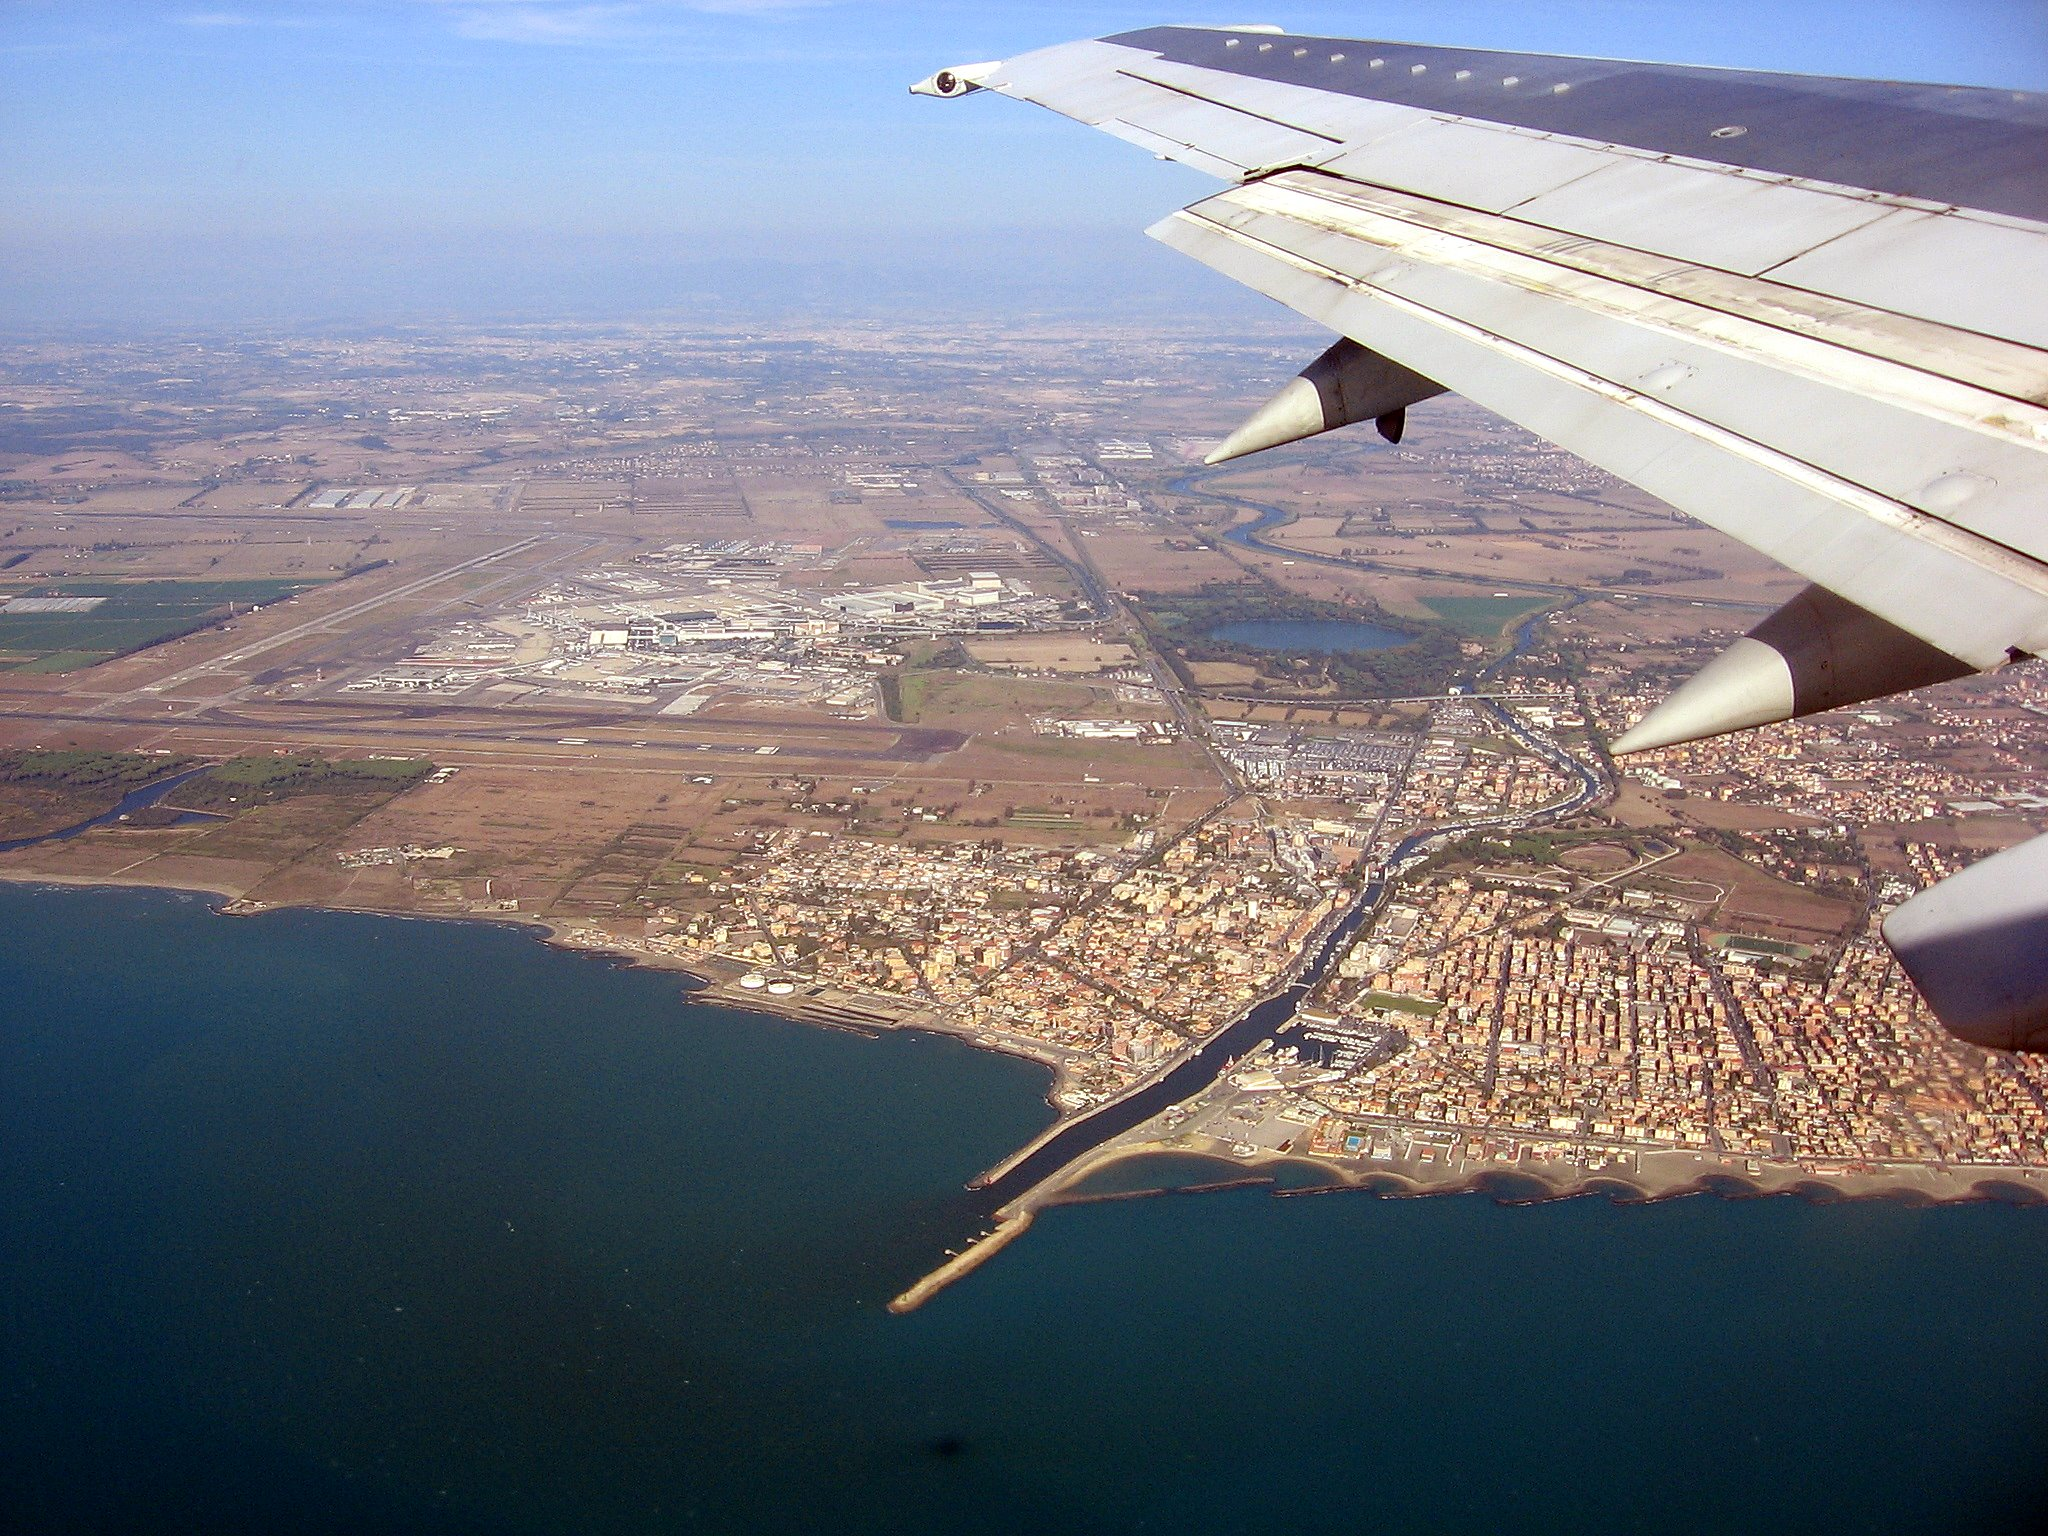 Fiumicino Italy  city photos : Original file ‎ 2,048 × 1,536 pixels, file size: 779 KB, MIME type ...